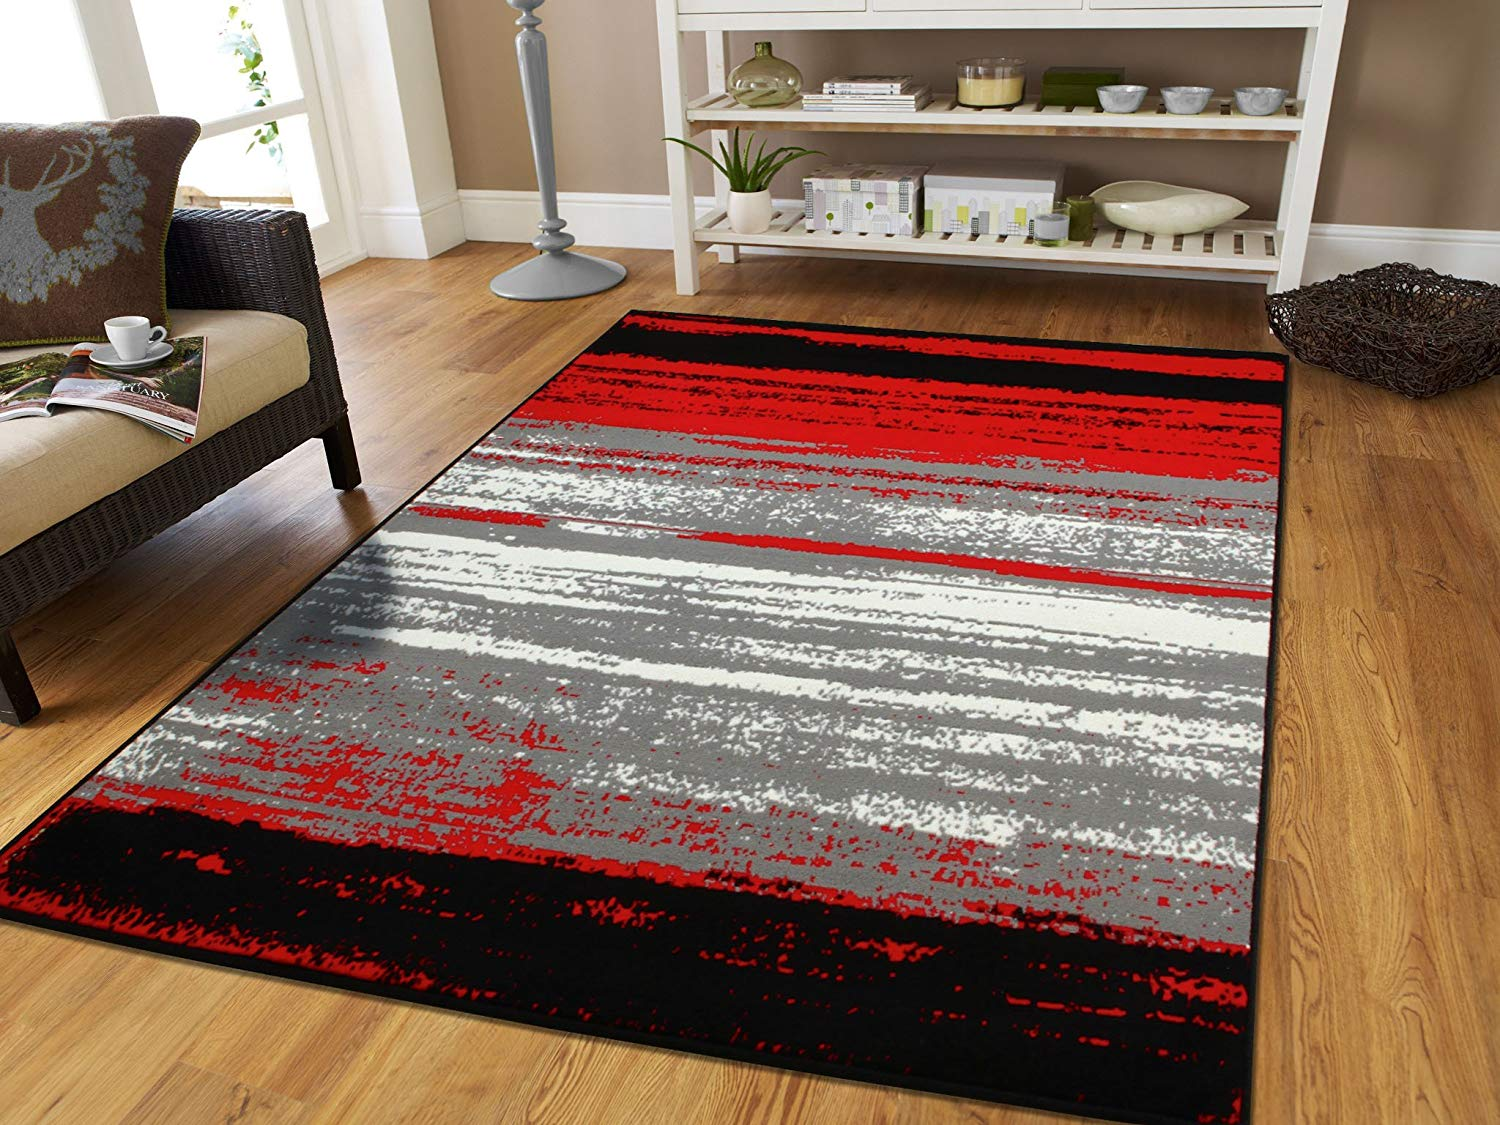 modern black area rug amazon.com: large grey modern rugs for living room 8x10 abstract area rugs UNHGEFS